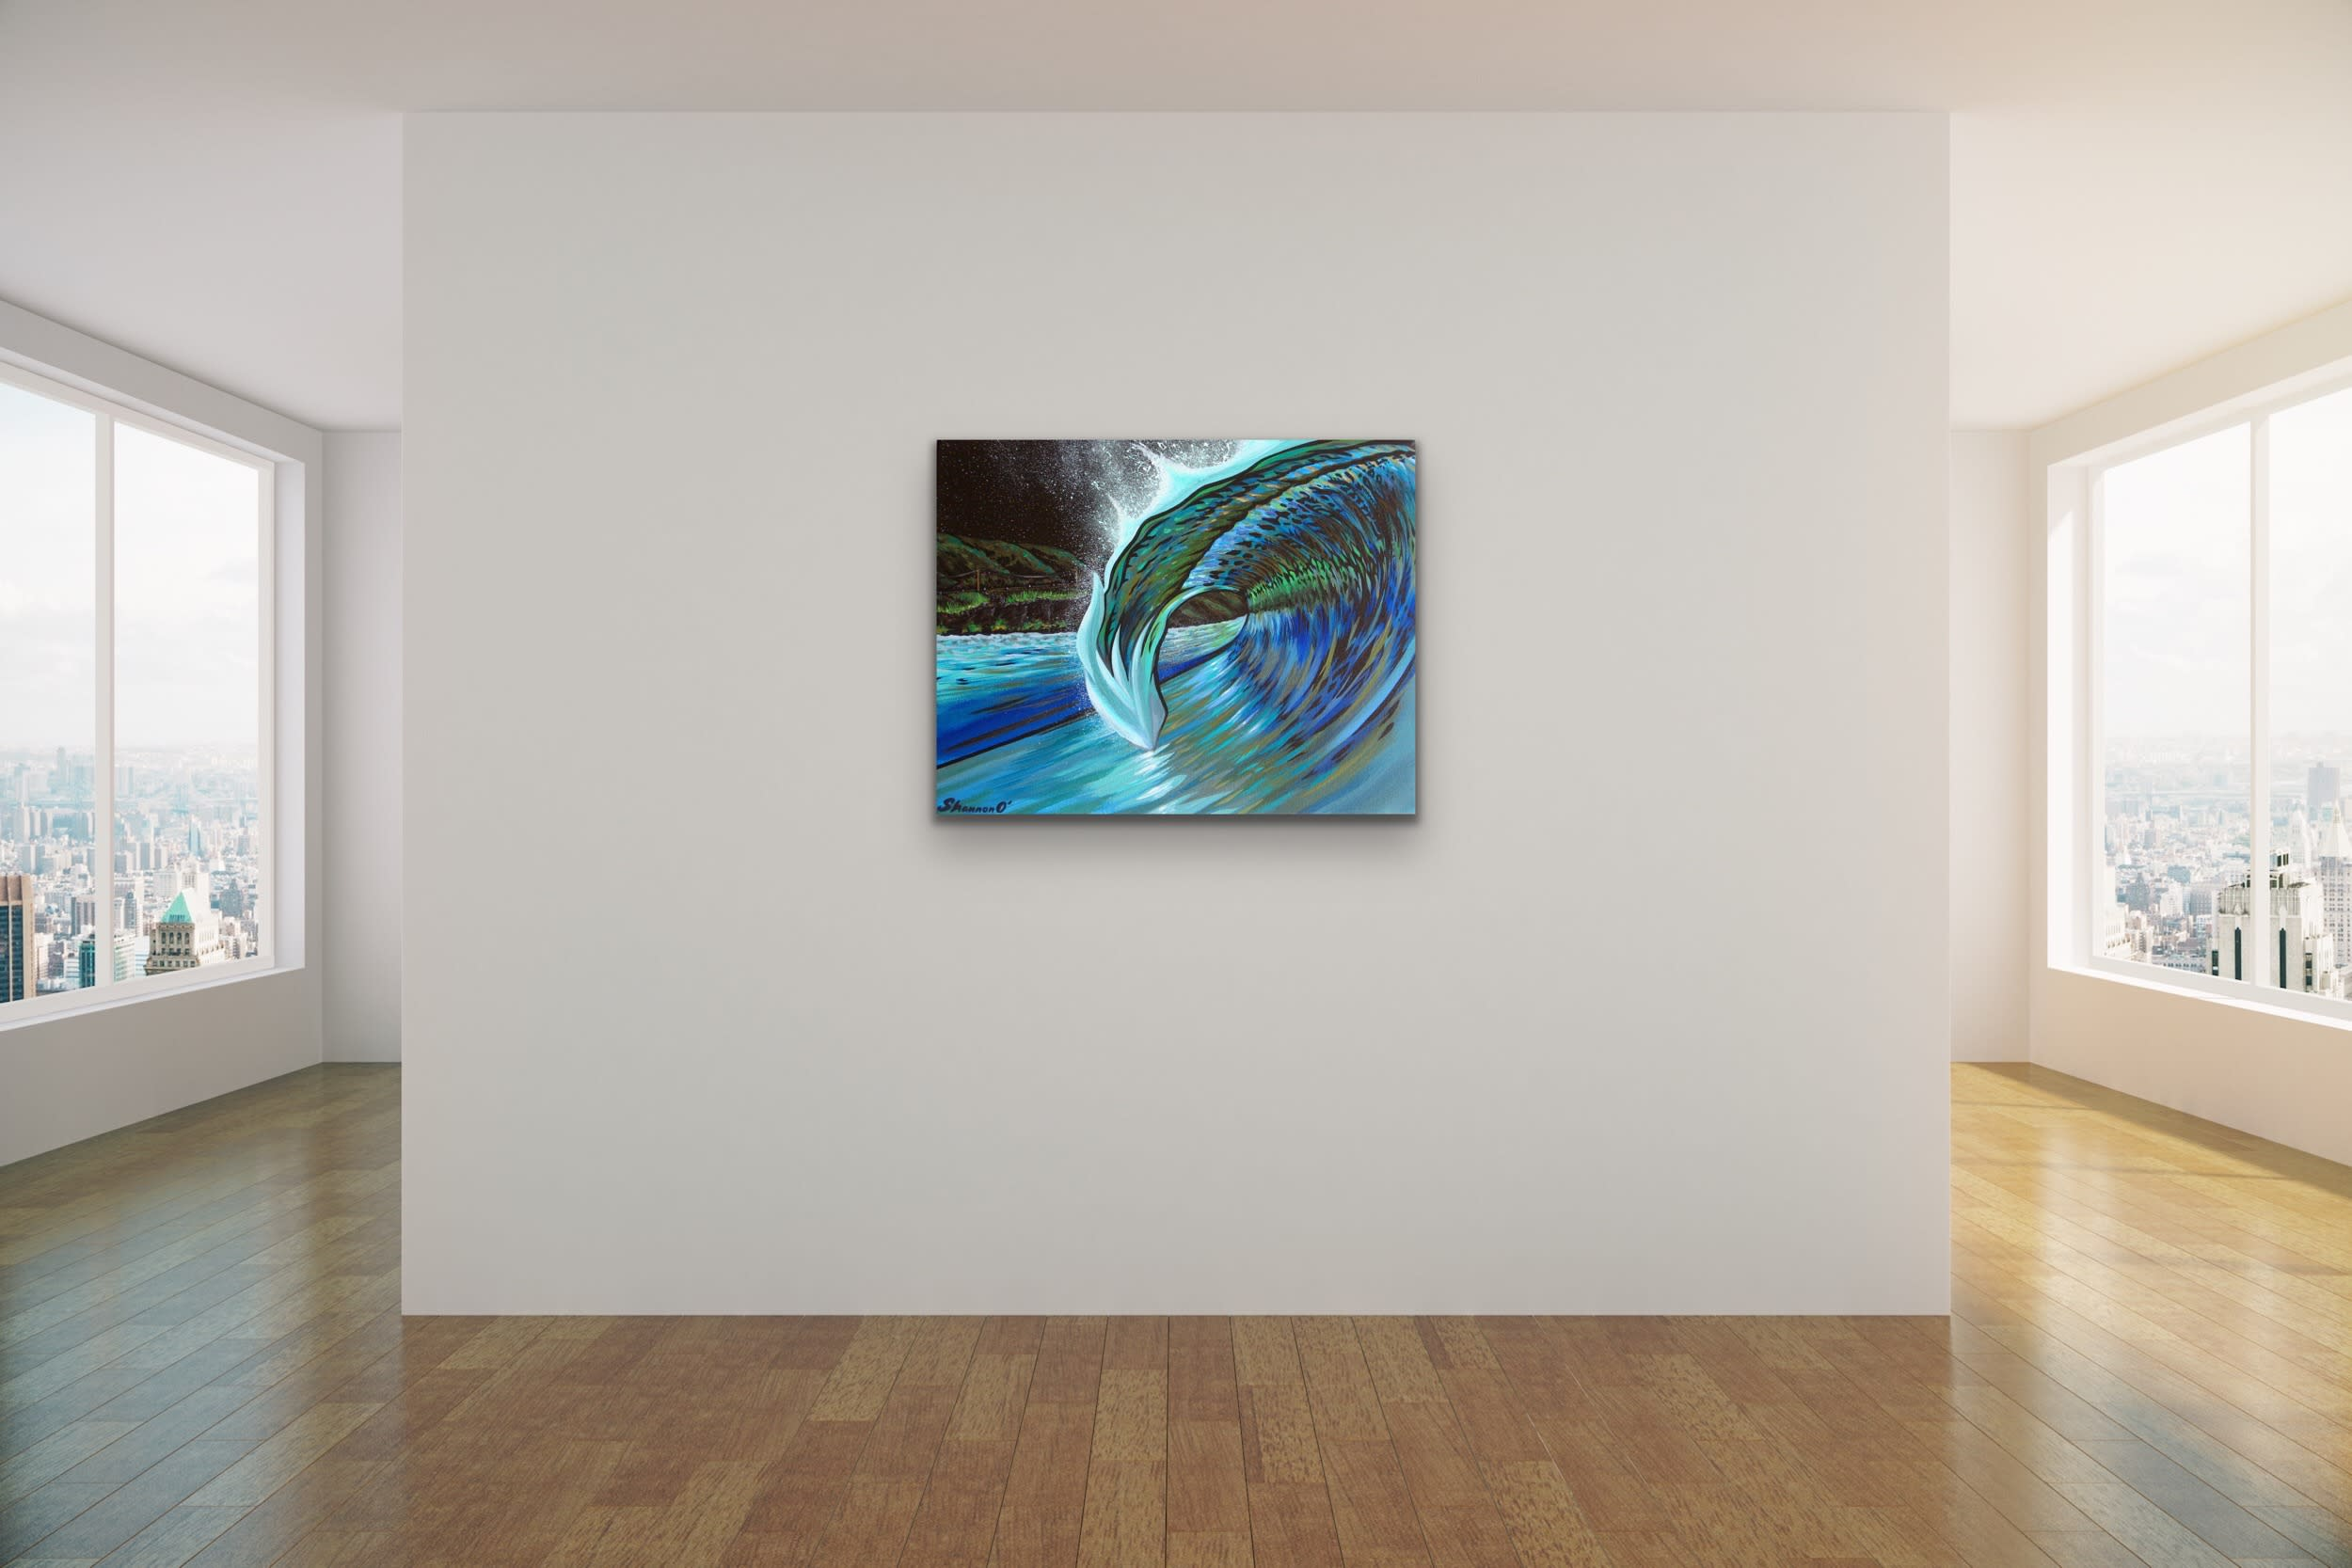 <div class='title'>           Shannon Oconnell Paintings Mock Ups Evo Art Maui Lahain Front Street Gallery Collect Popular Colorful Ocean Flowers Scenery Waves 4         </div>